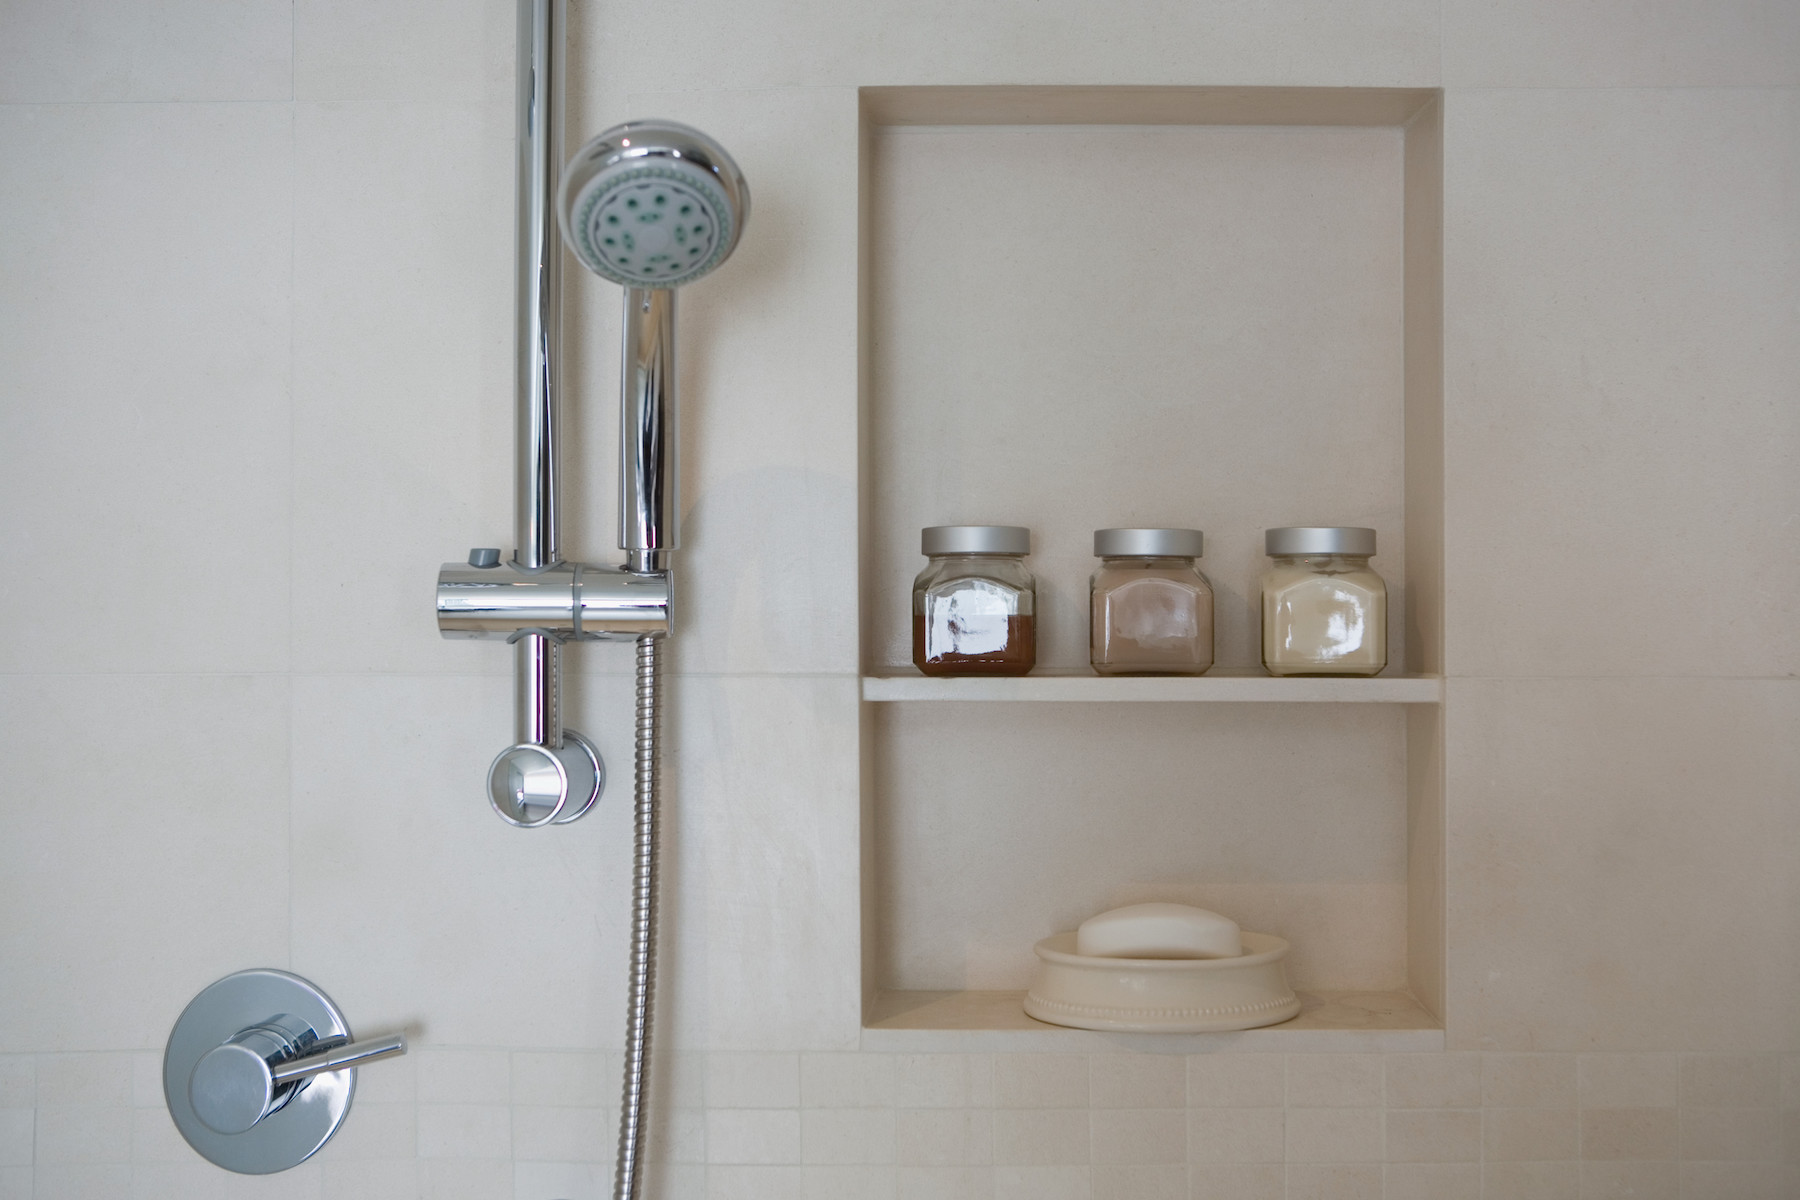 How to Clean Bathroom, Shower Head